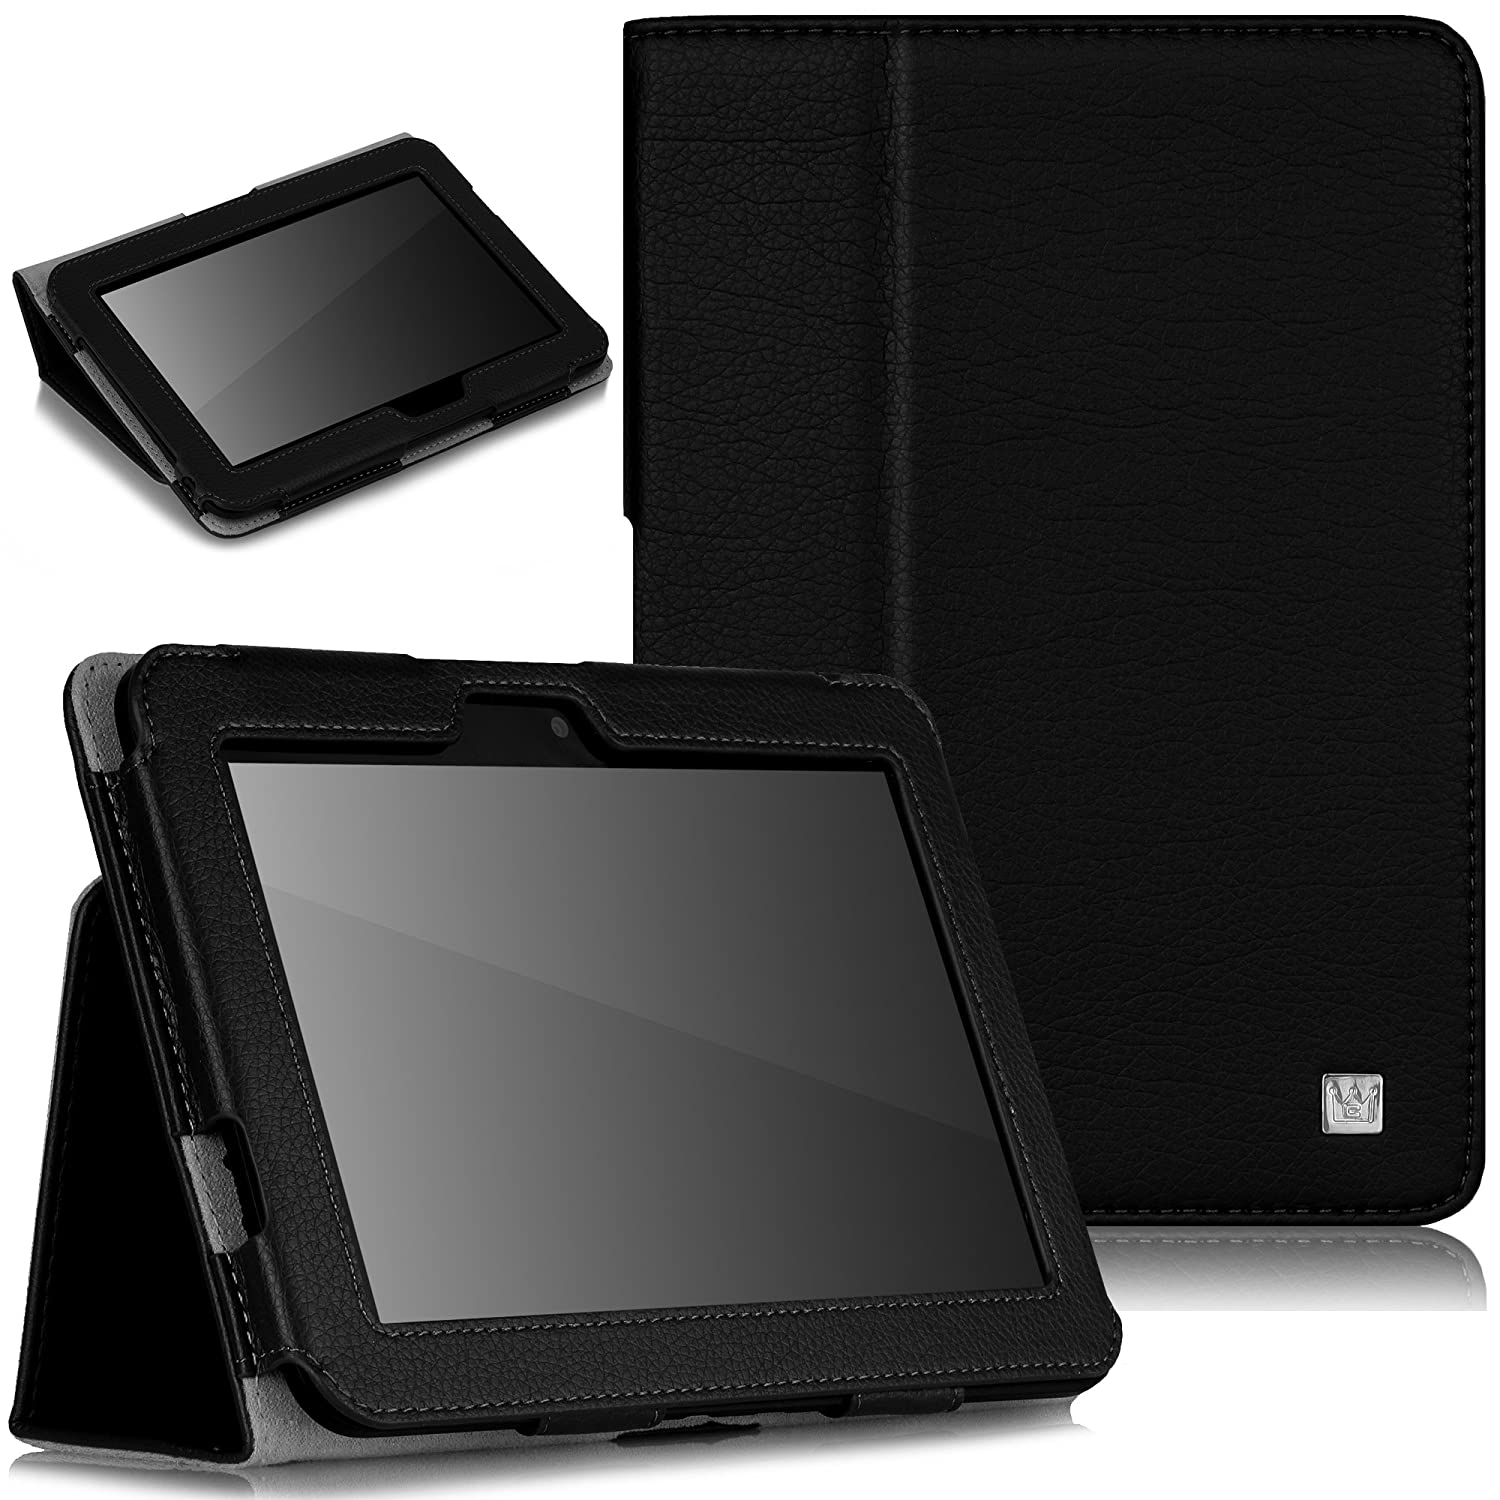 CaseCrown Bold Standby Case (Black) for Amazon Kindle Fire HD 7 Inch (Built-in magnet for sleep / wake feature) $7.99